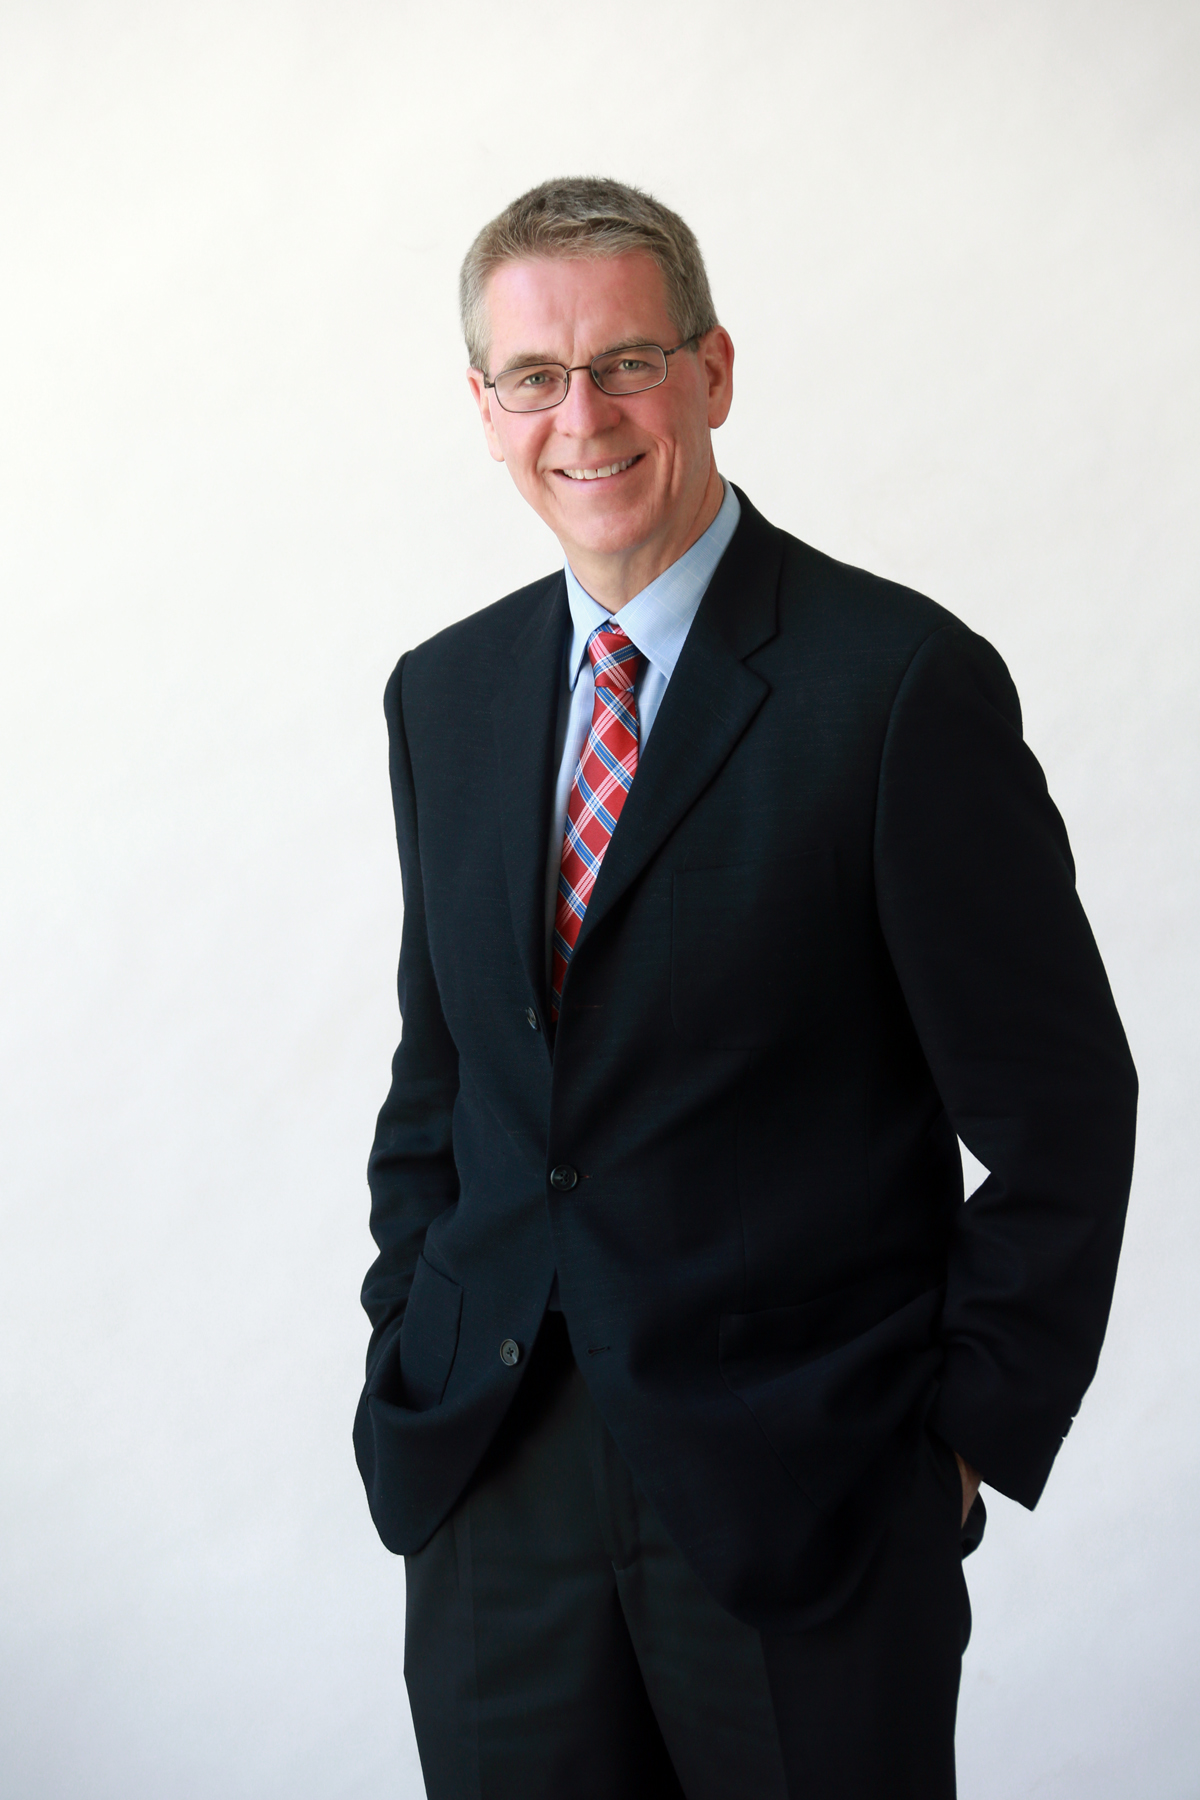 Dr. James O'Leary, MD